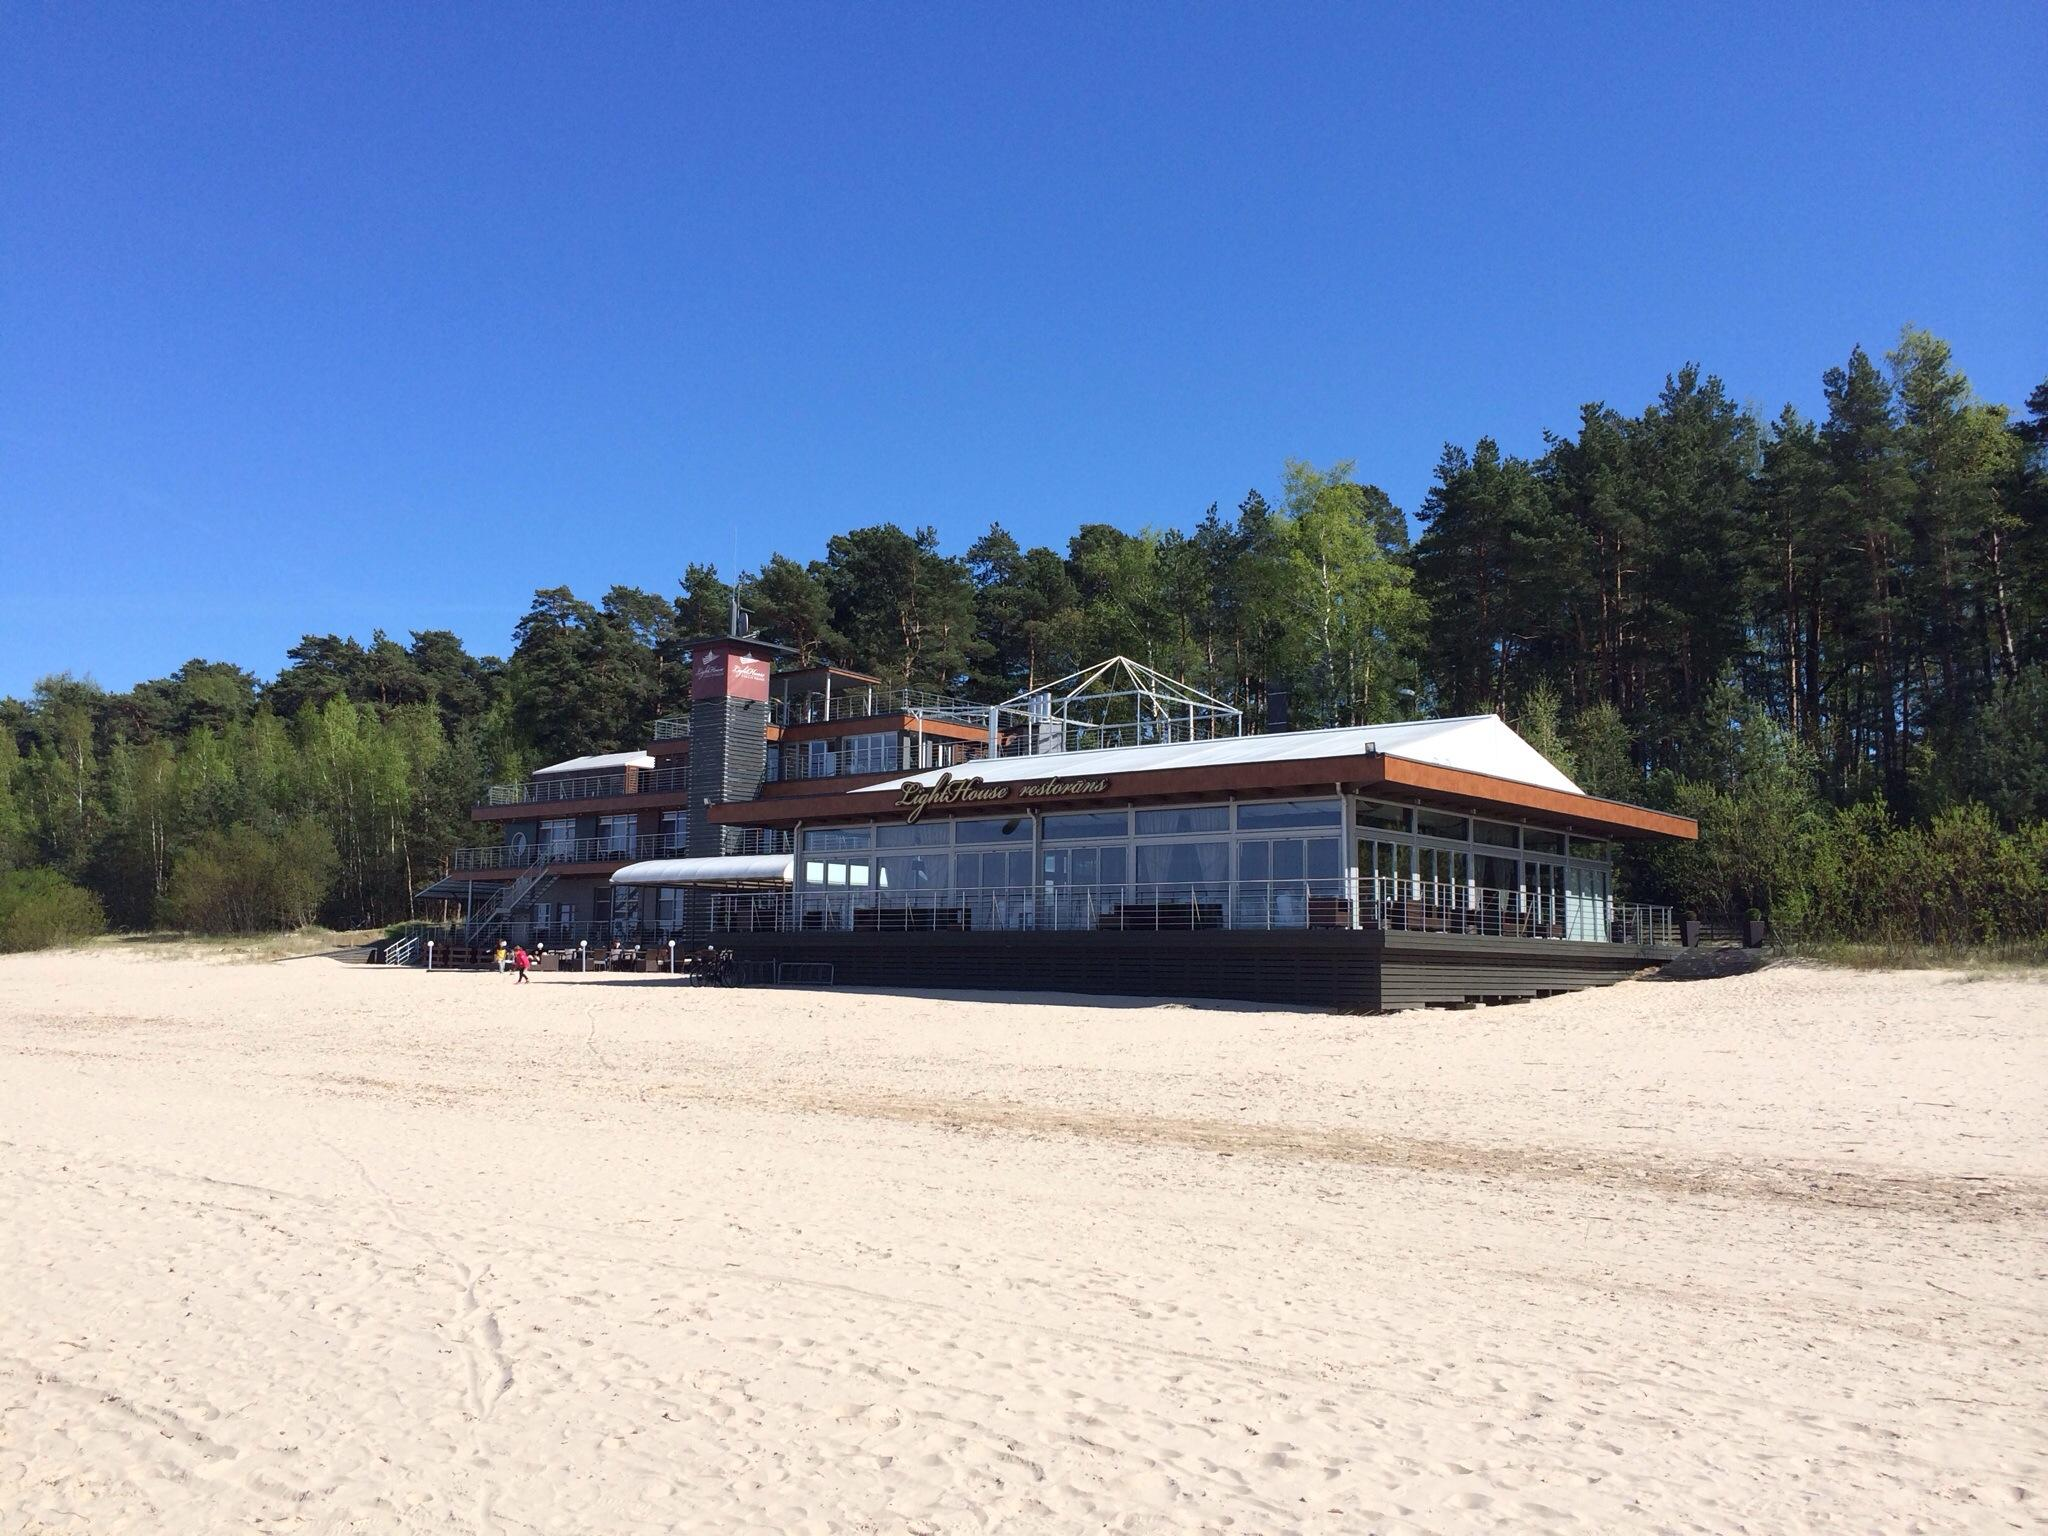 Light house Jurmala